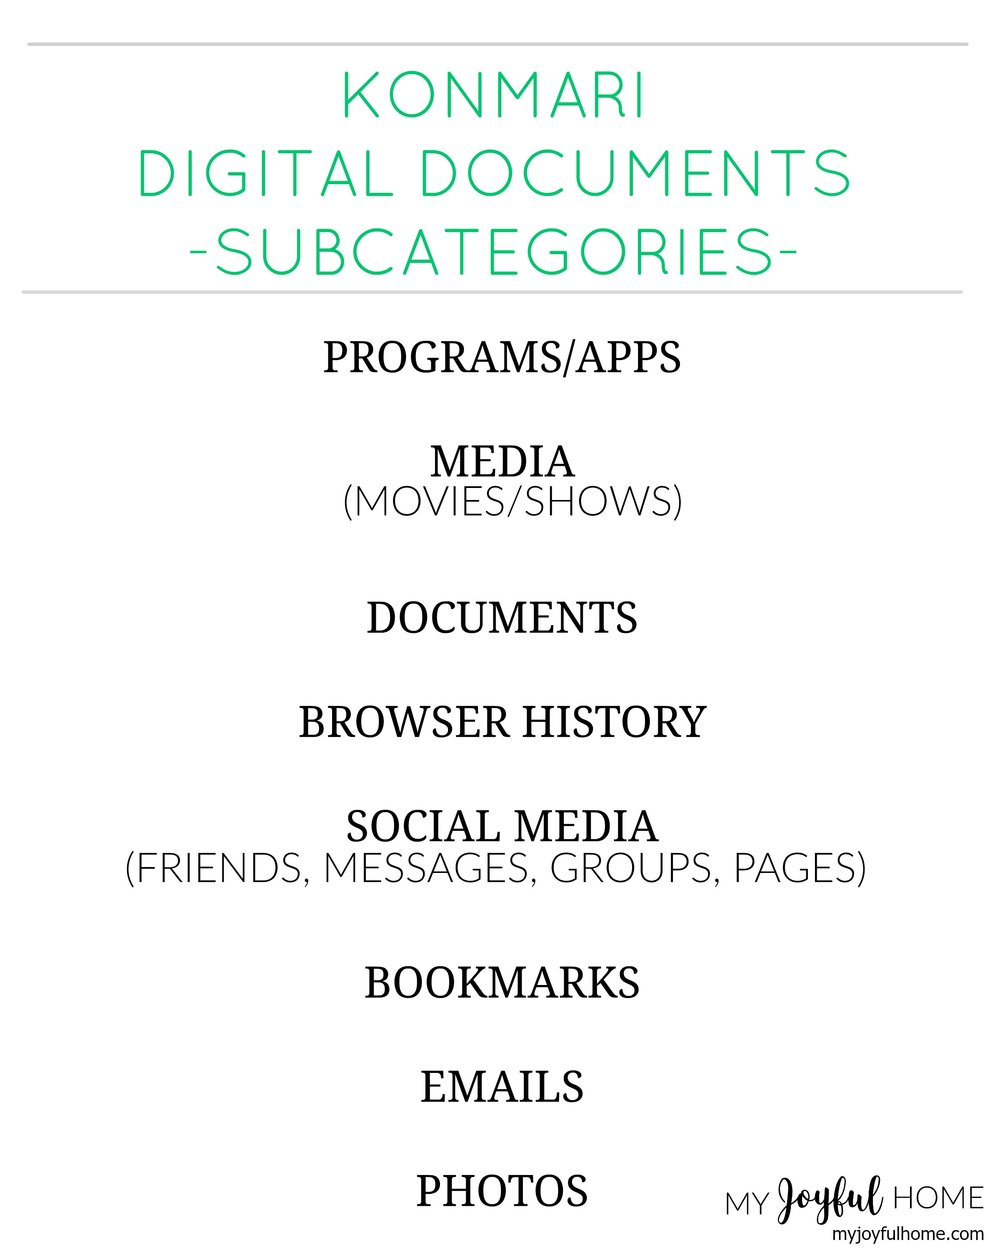 konmari-digital-documents